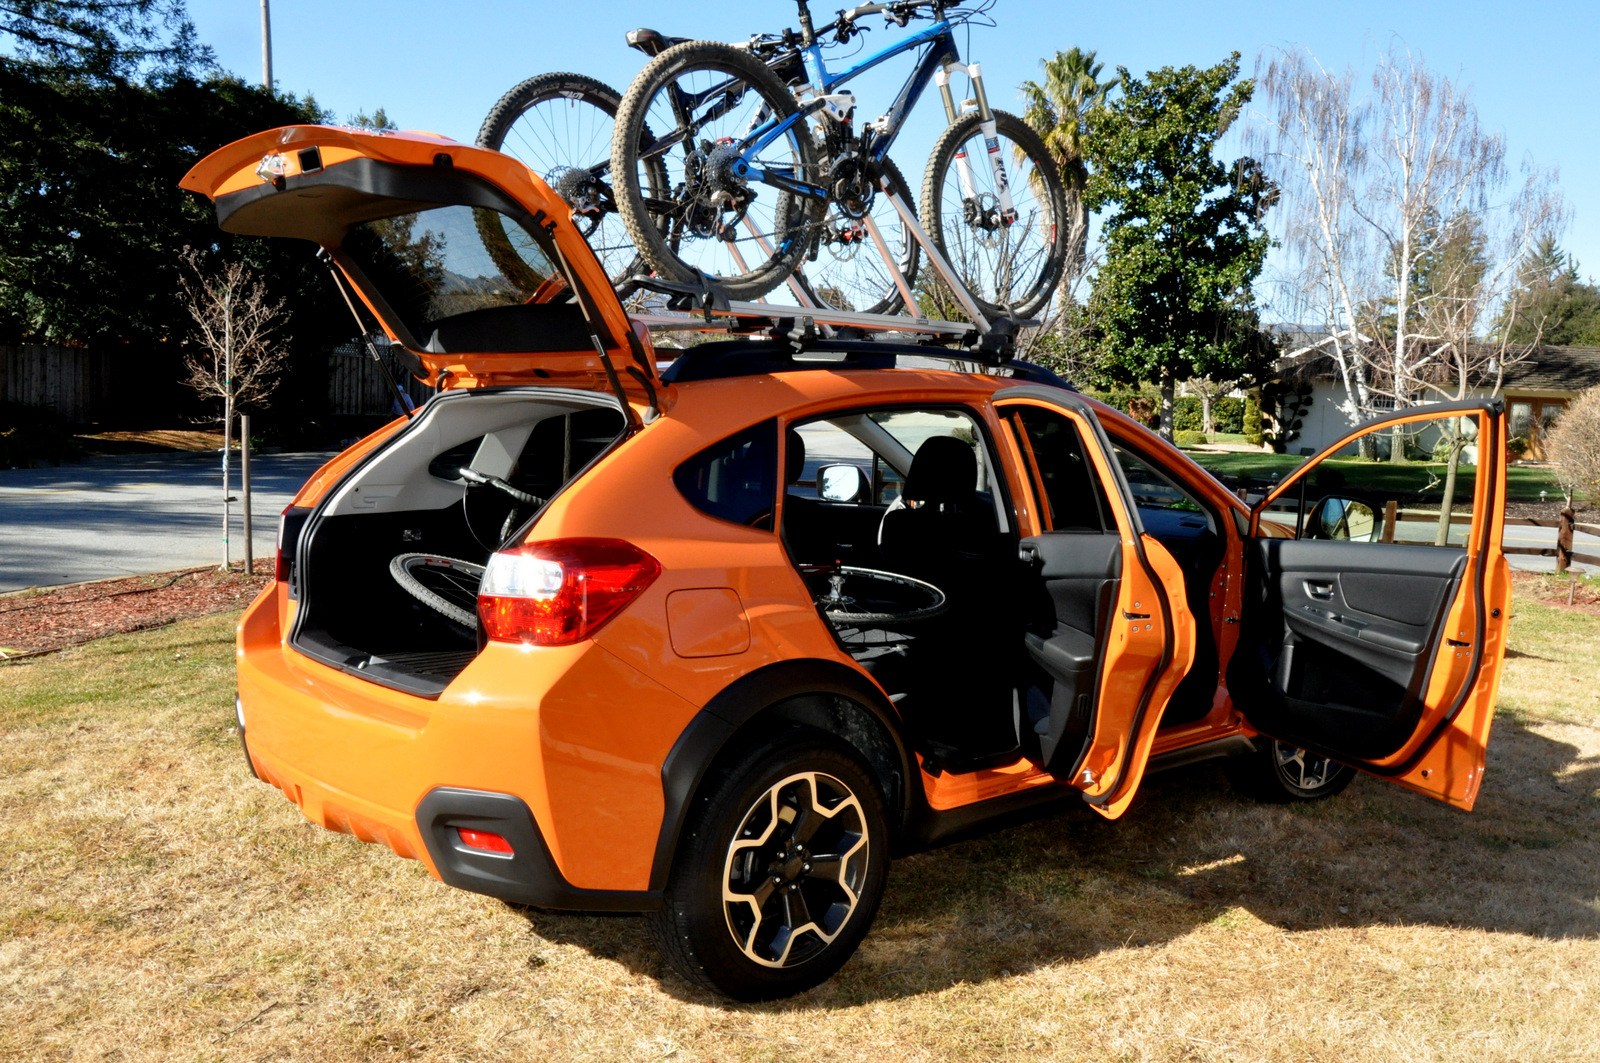 Subaru XV Crosstrek fully loaded with bikes